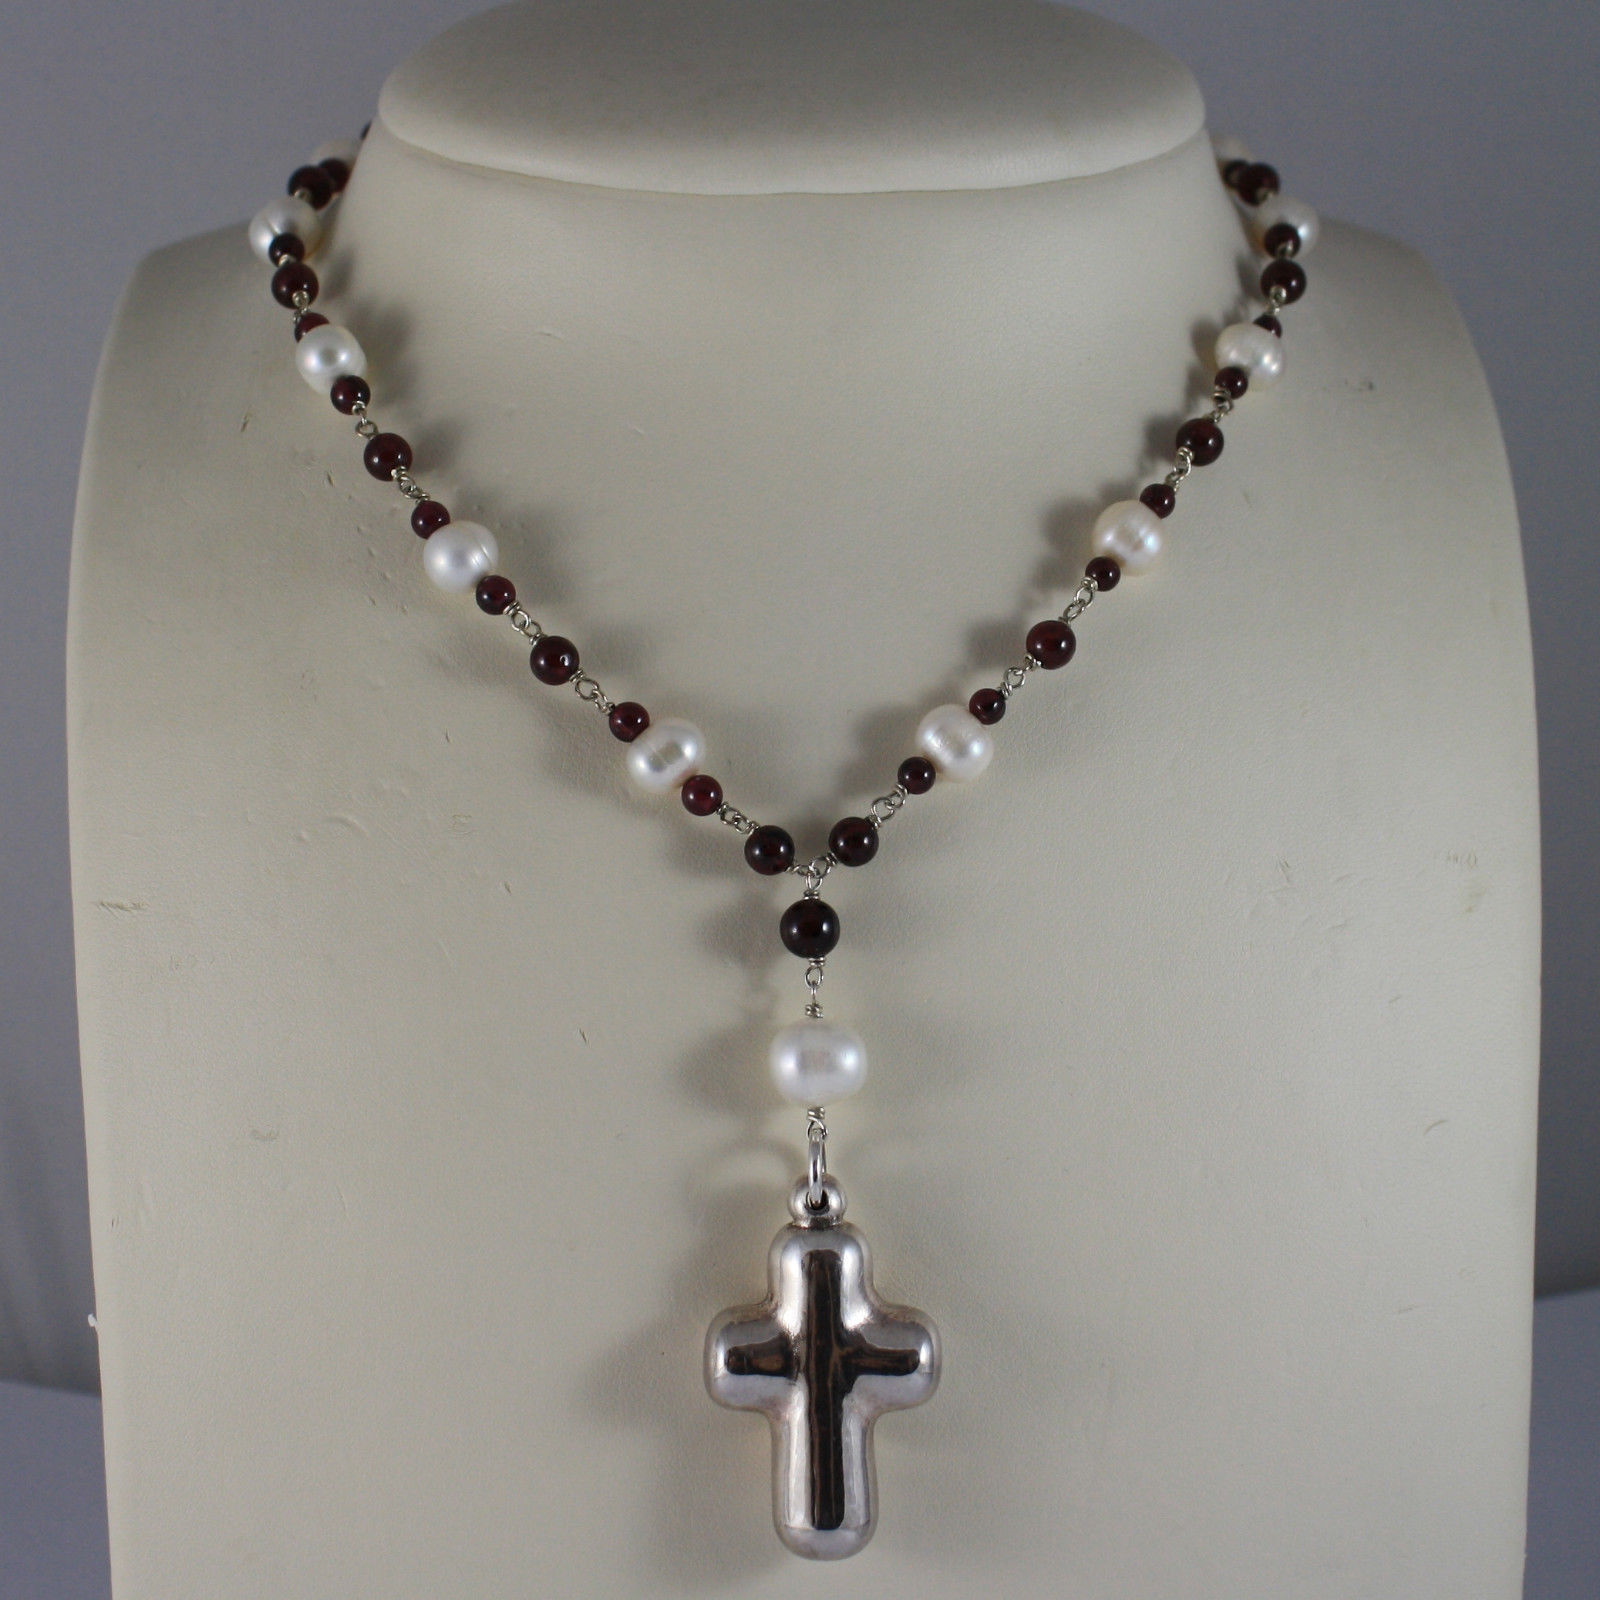 .925 RHODIUM SILVER NECKLACE WITH WHITE FRESHWATER PEARL AND RED GRENADE